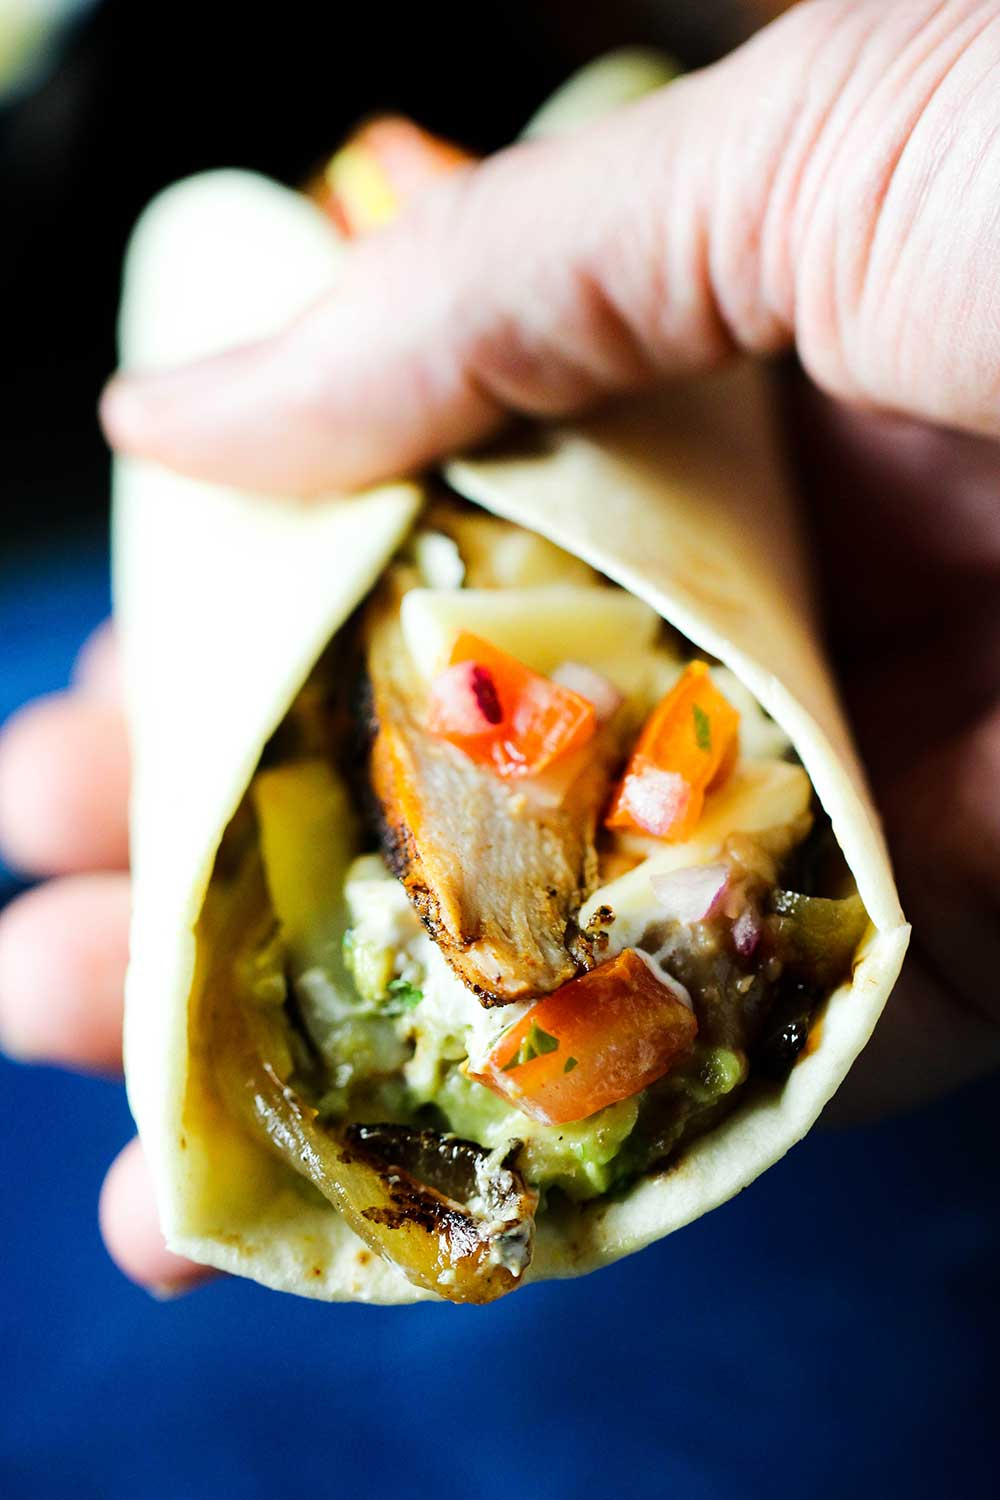 A rolled chicken fajita being held by a hand.